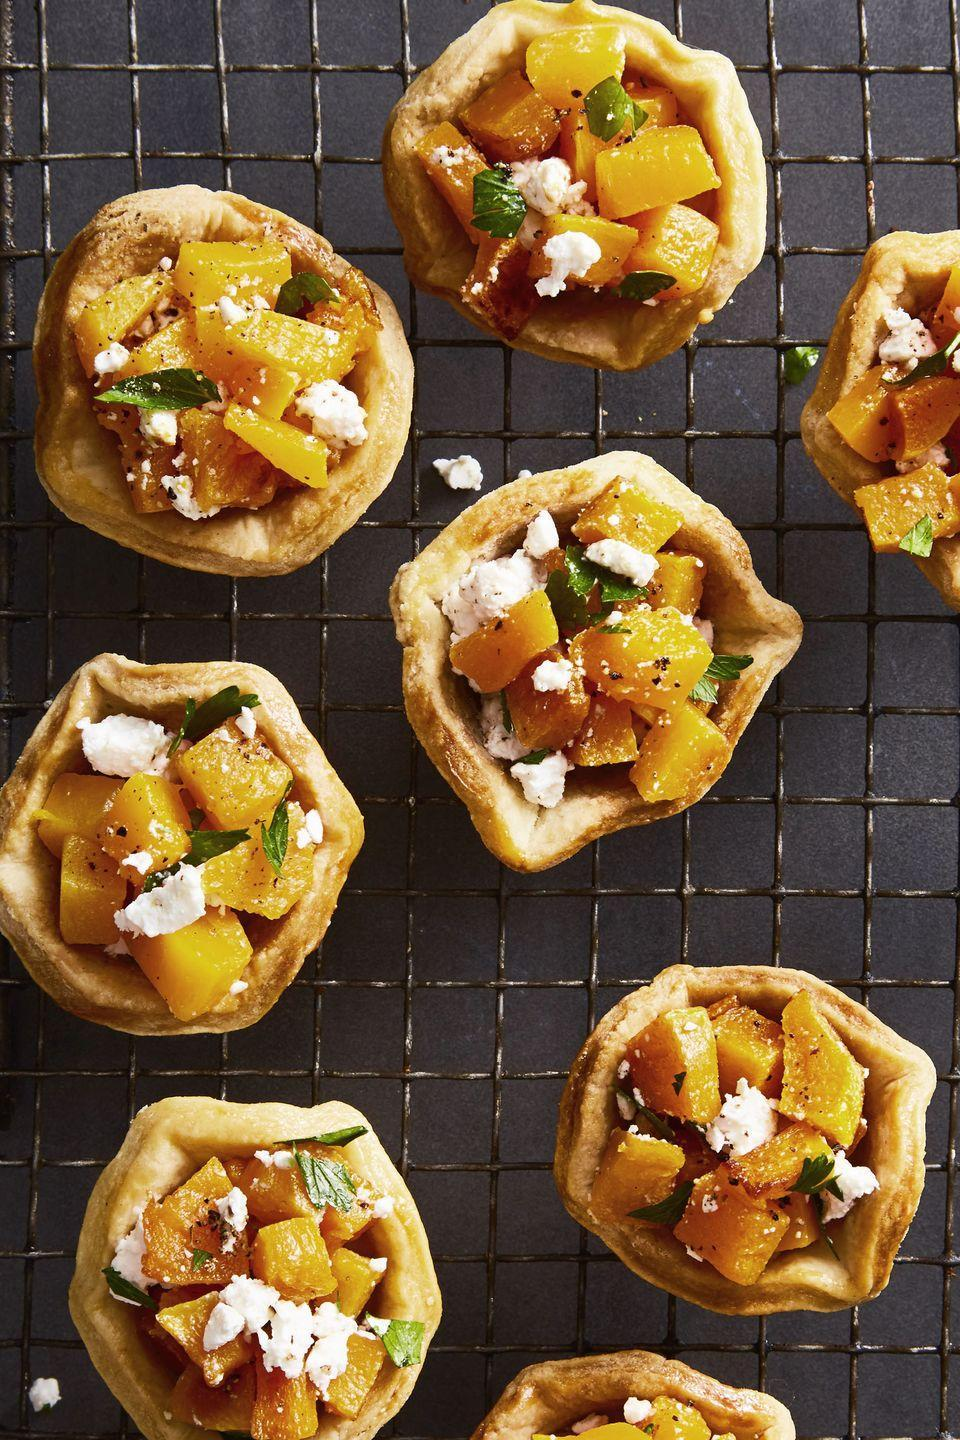 """<p>These loaded tarts are a no-mess, no-fuss way to enjoy winter's favorite squash.</p><p><em><a href=""""https://www.goodhousekeeping.com/food-recipes/a46642/butternut-squash-and-feta-tartlets-recipe/"""" rel=""""nofollow noopener"""" target=""""_blank"""" data-ylk=""""slk:Get the recipe for Butternut Squash and Feta Tartlets »"""" class=""""link rapid-noclick-resp"""">Get the recipe for Butternut Squash and Feta Tartlets »</a></em><br></p><p><strong>RELATED: </strong><a href=""""https://www.goodhousekeeping.com/food-recipes/g767/butternut-squash-recipes/"""" rel=""""nofollow noopener"""" target=""""_blank"""" data-ylk=""""slk:Irresistible and Easy Butternut Squash Recipes You Need to Make"""" class=""""link rapid-noclick-resp""""> Irresistible and Easy Butternut Squash Recipes You Need to Make</a></p>"""